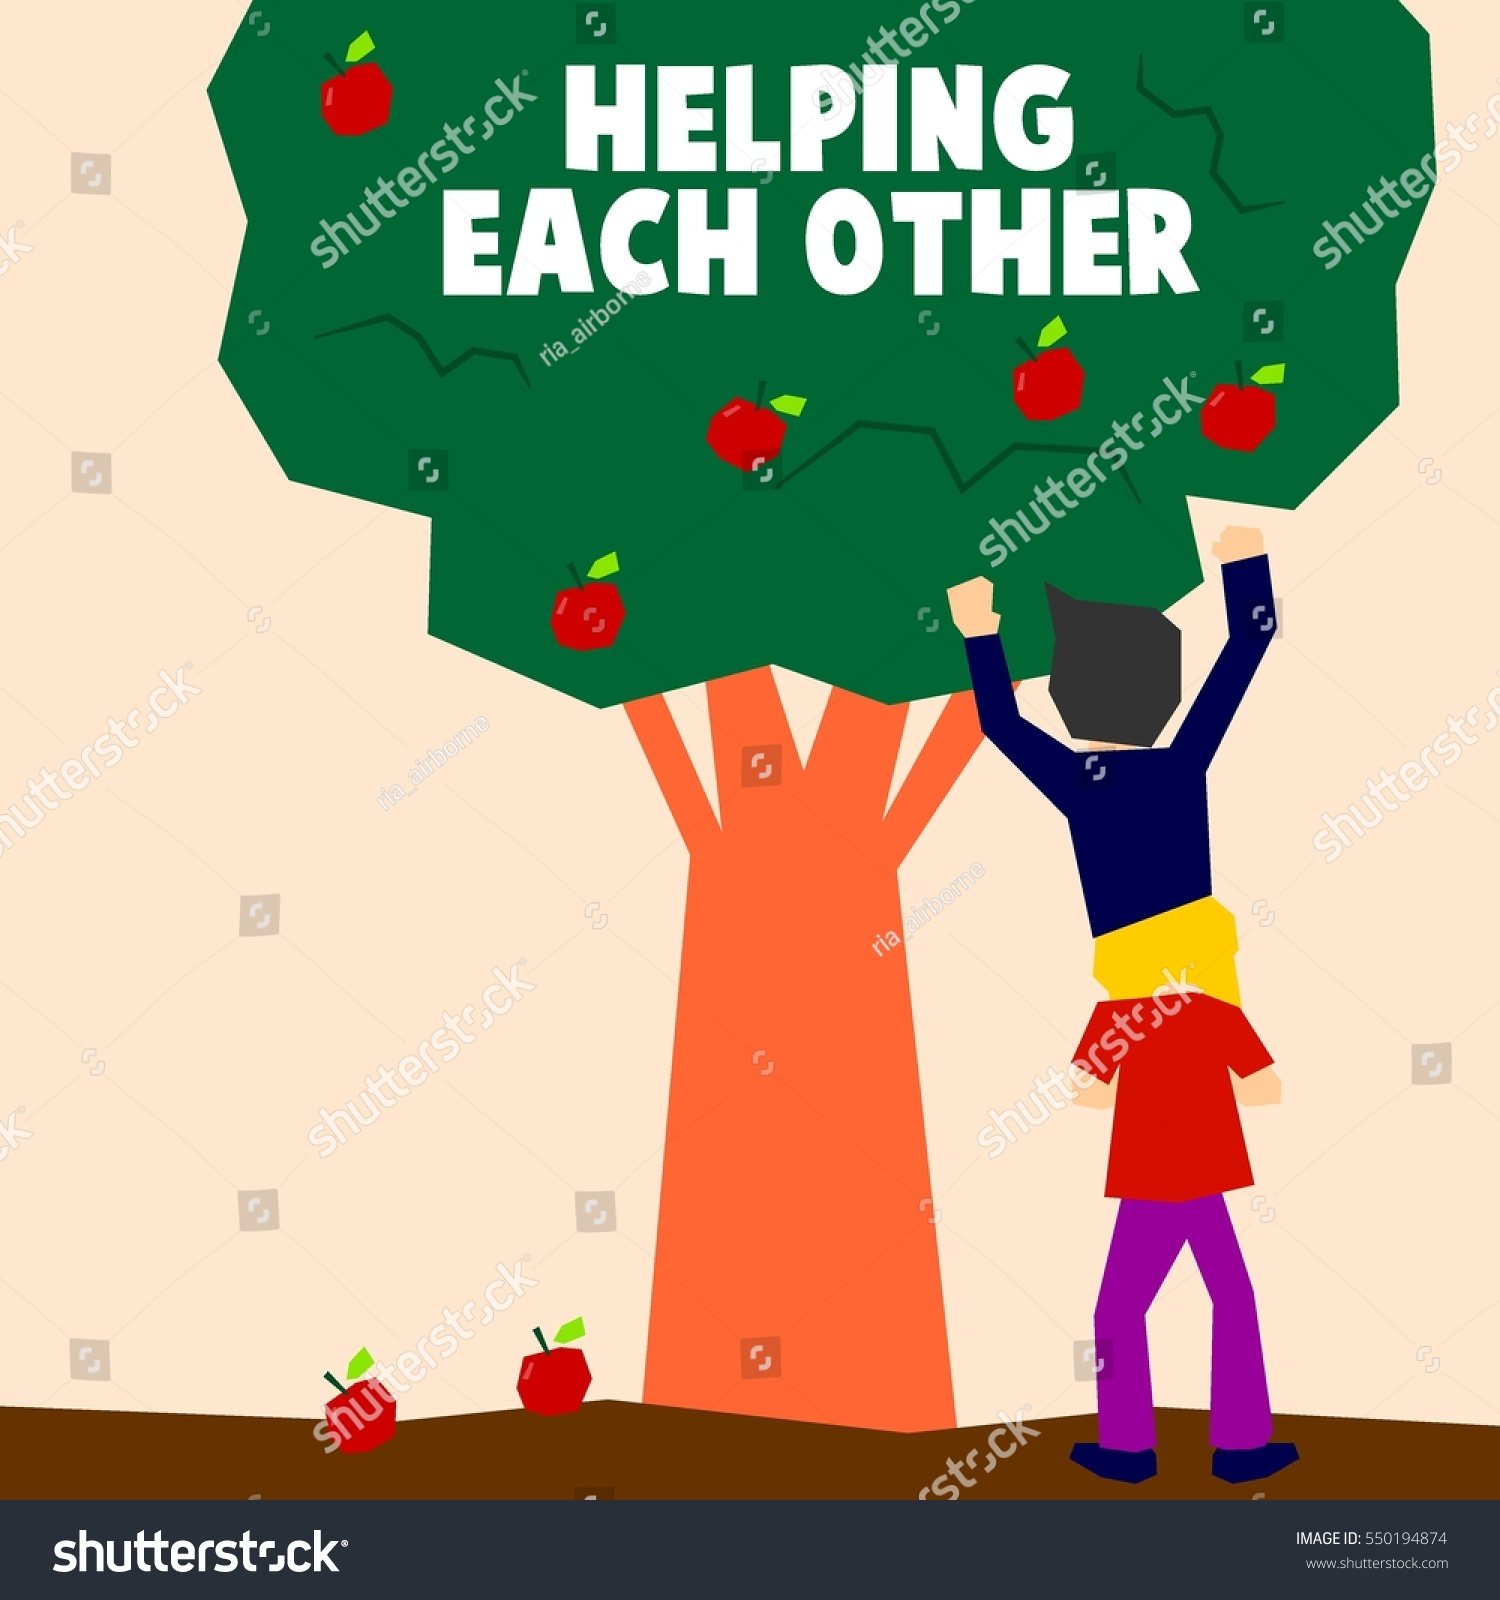 Helping Each Other: Helping Each Other Illustration Concept Stock Vector